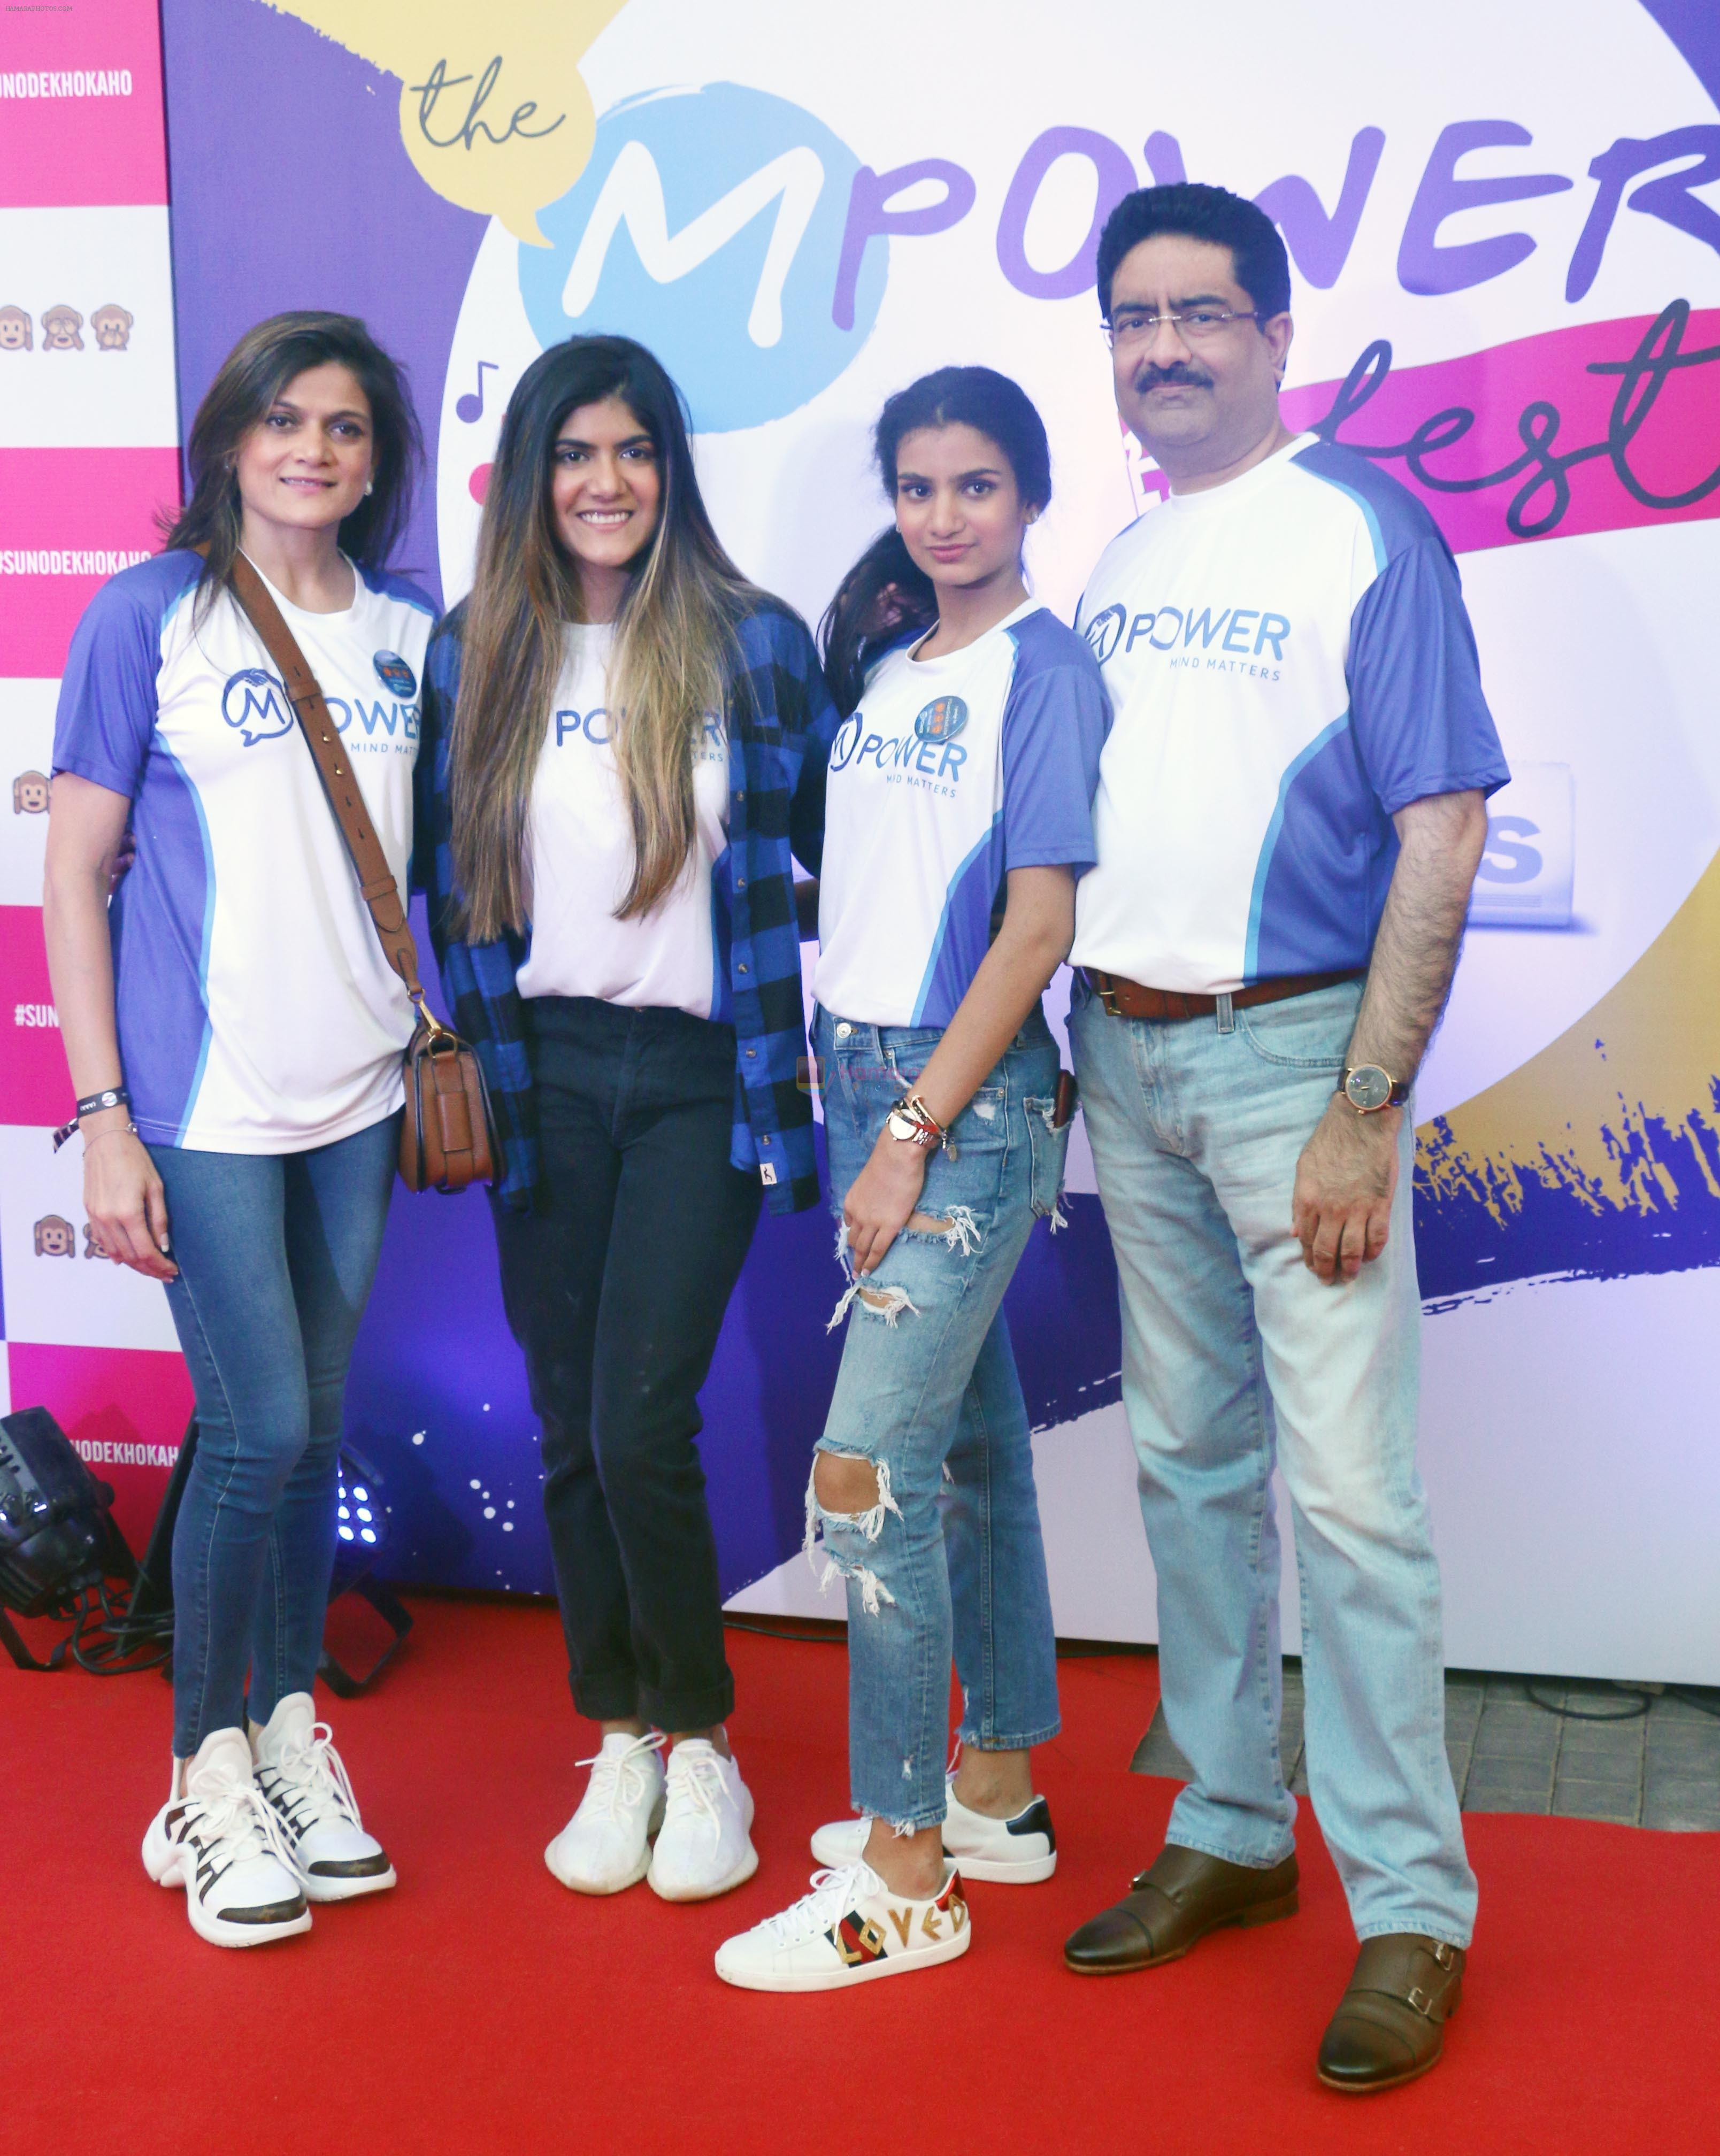 Birla Family at The Mpower Fest � A Night Of Music in Mumbai on 11th Nov 2018